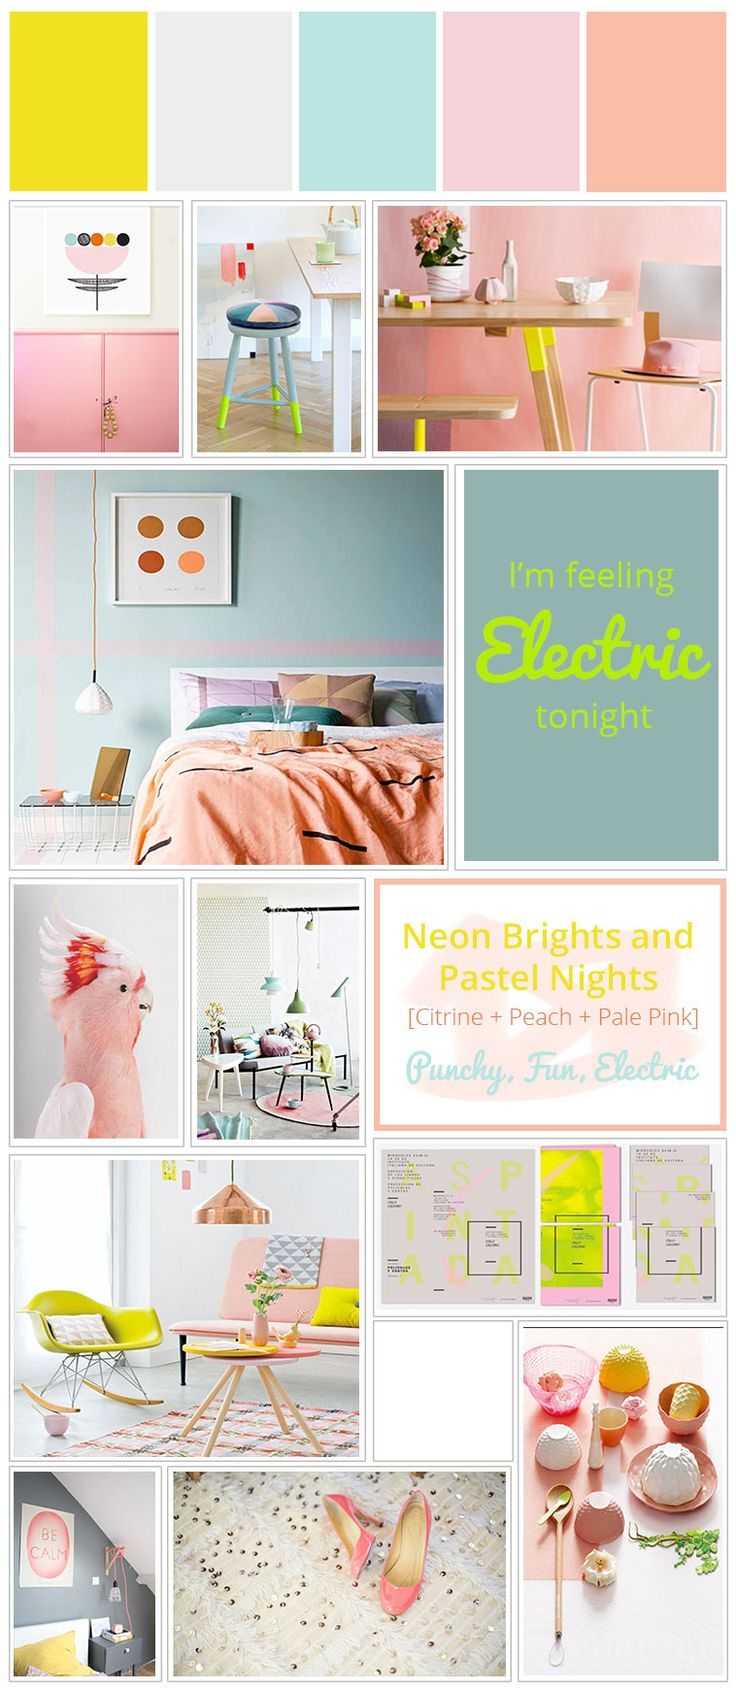 Color Story | Neon Brights and Pastel Nights #stylyze #brightsummercolors…